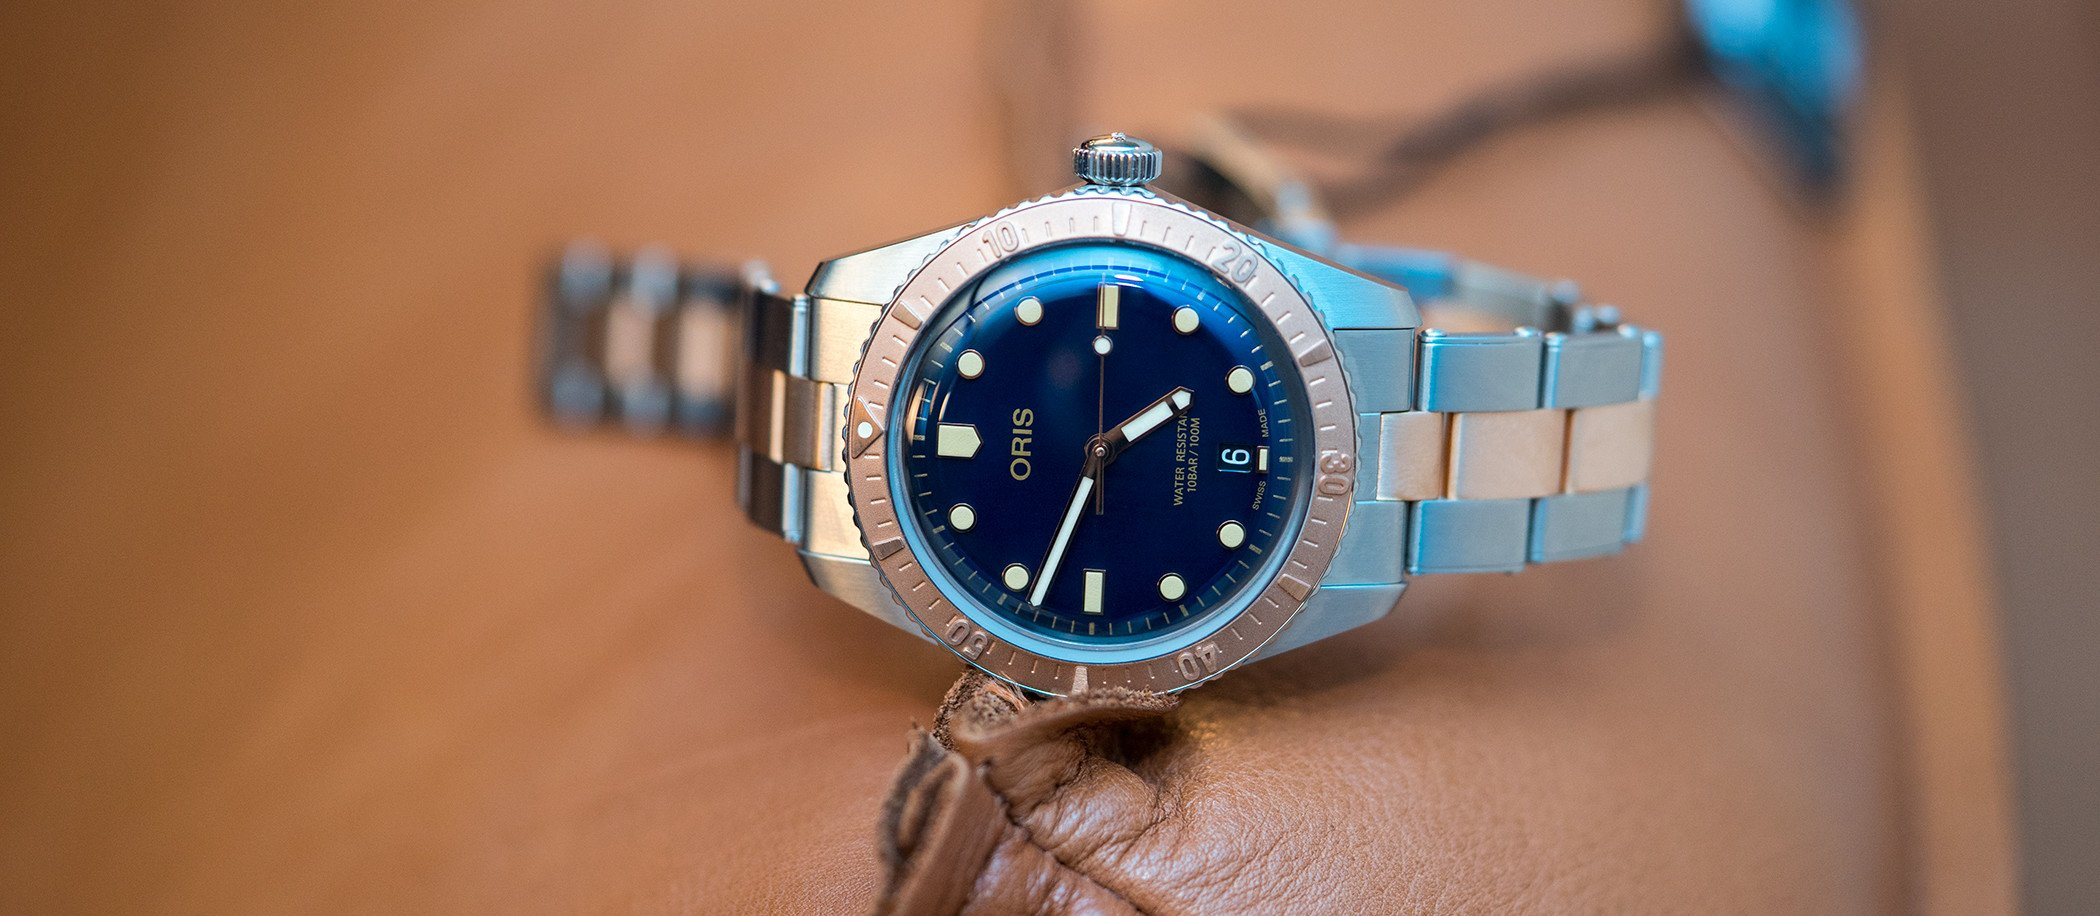 Oris Divers Sixty-Five bi-color